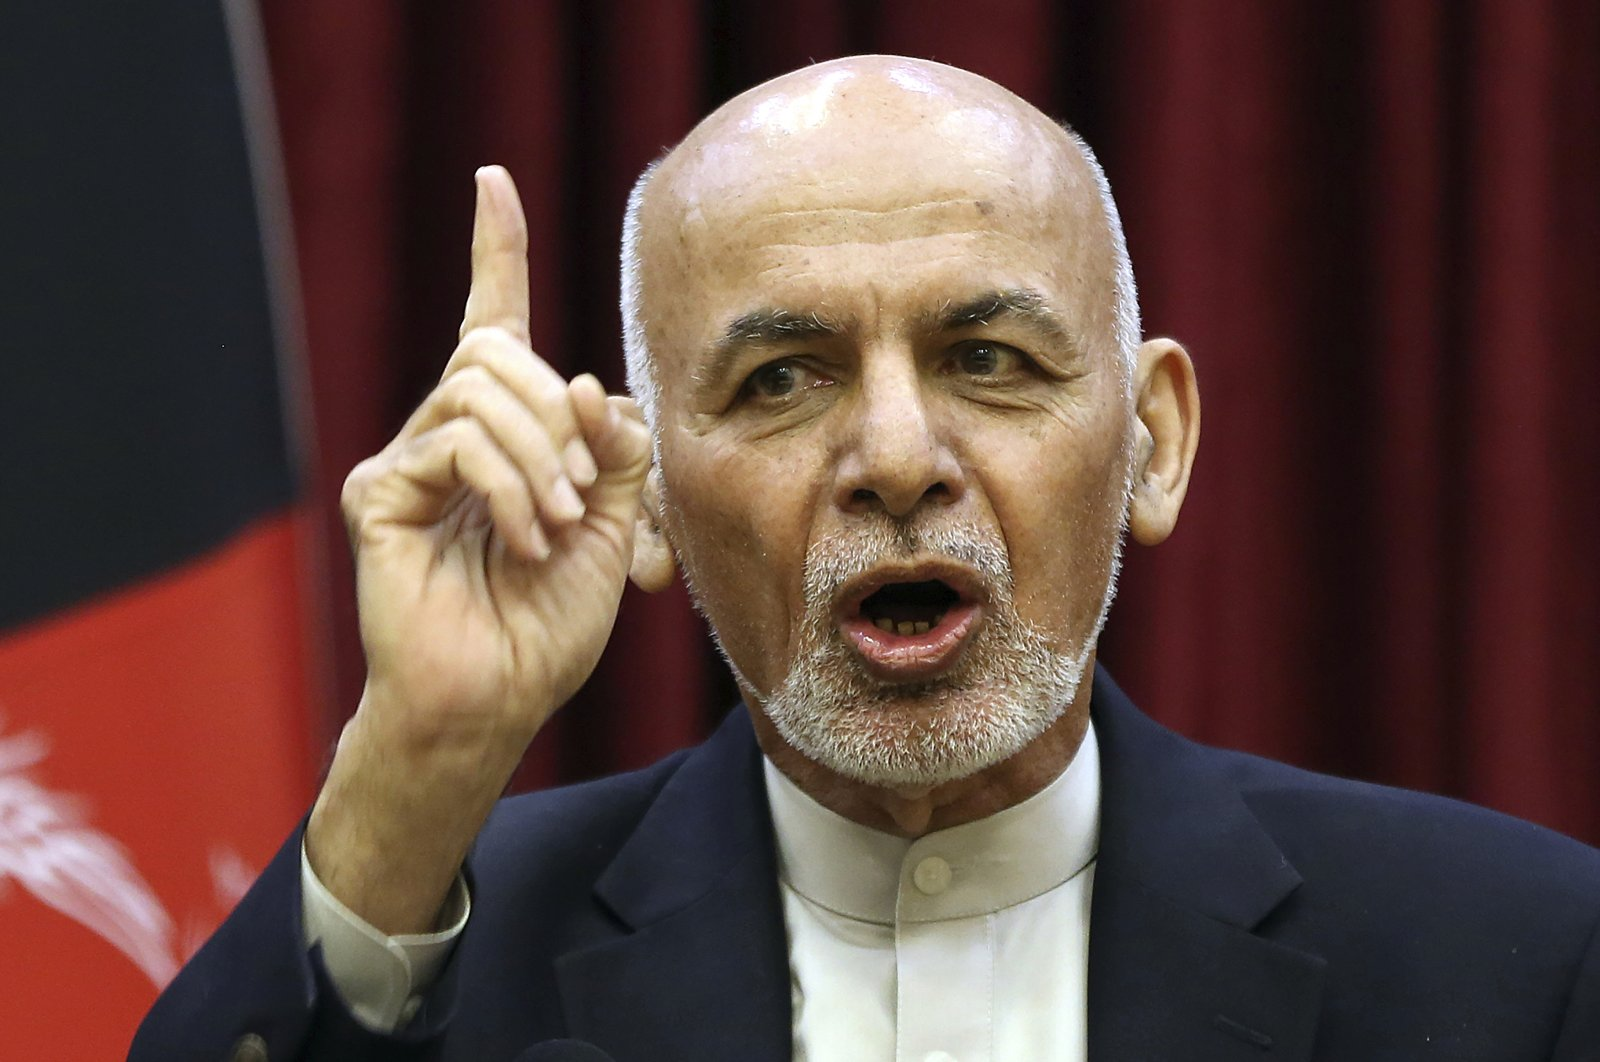 Afghan President Ashraf Ghani speaks during a news conference in presidential palace, Kabul, March 1, 2020. (AP Photo)